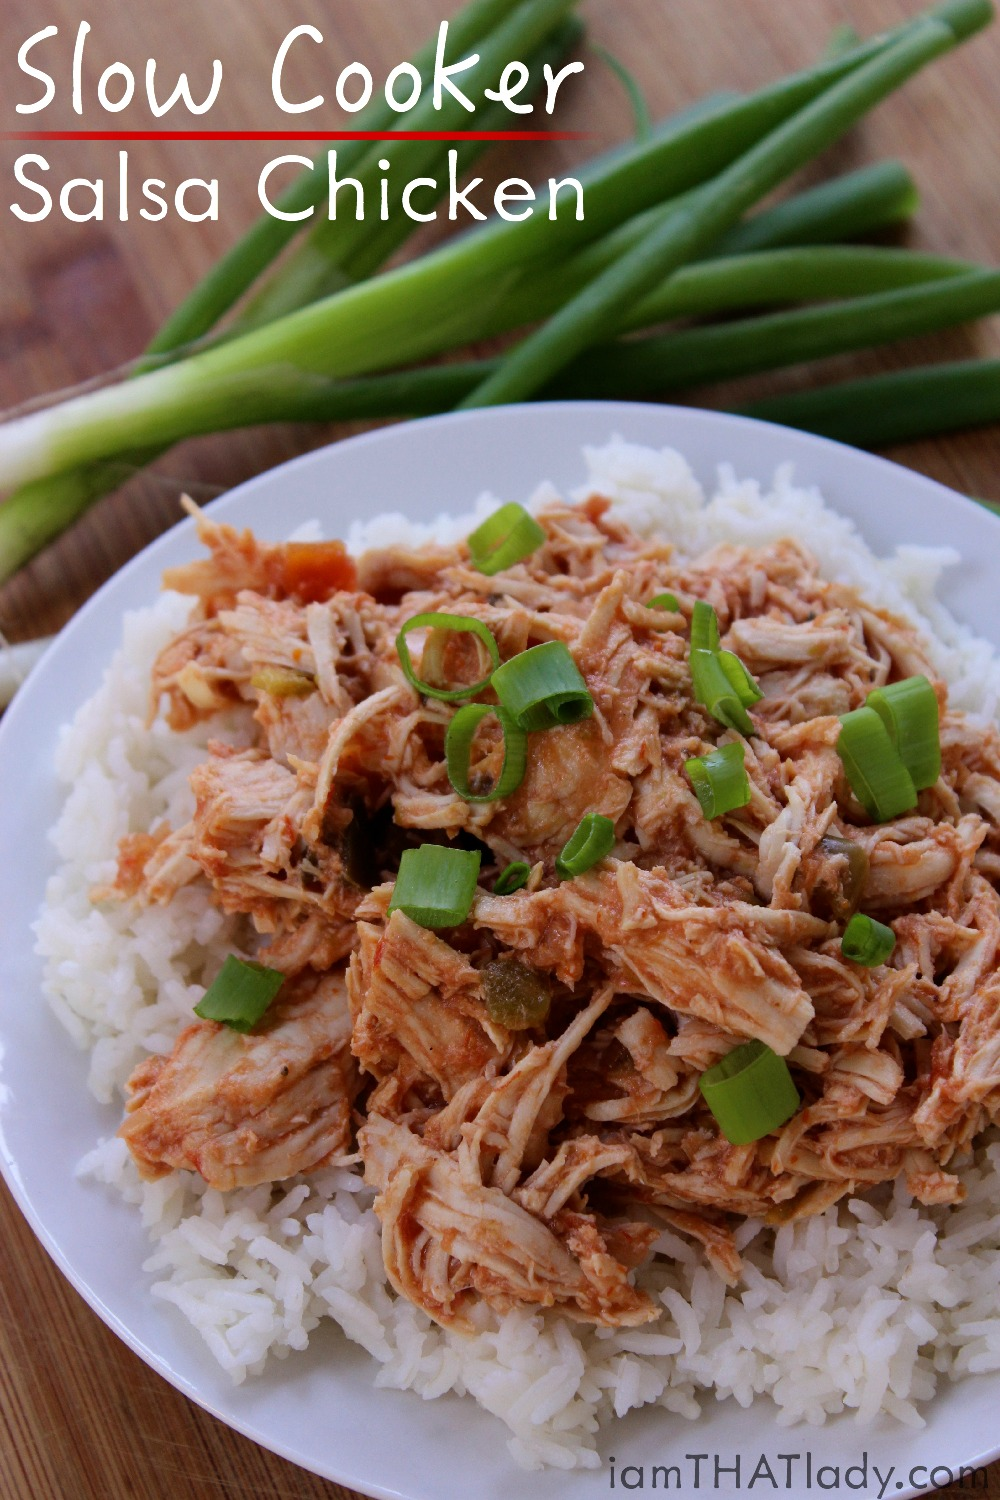 Need something SUPER easy for dinner tonight? This Slow Cooker Salsa Chicken is it! Salsa, chicken, and just a couple other ingredients in your crockpot and you're good to go!